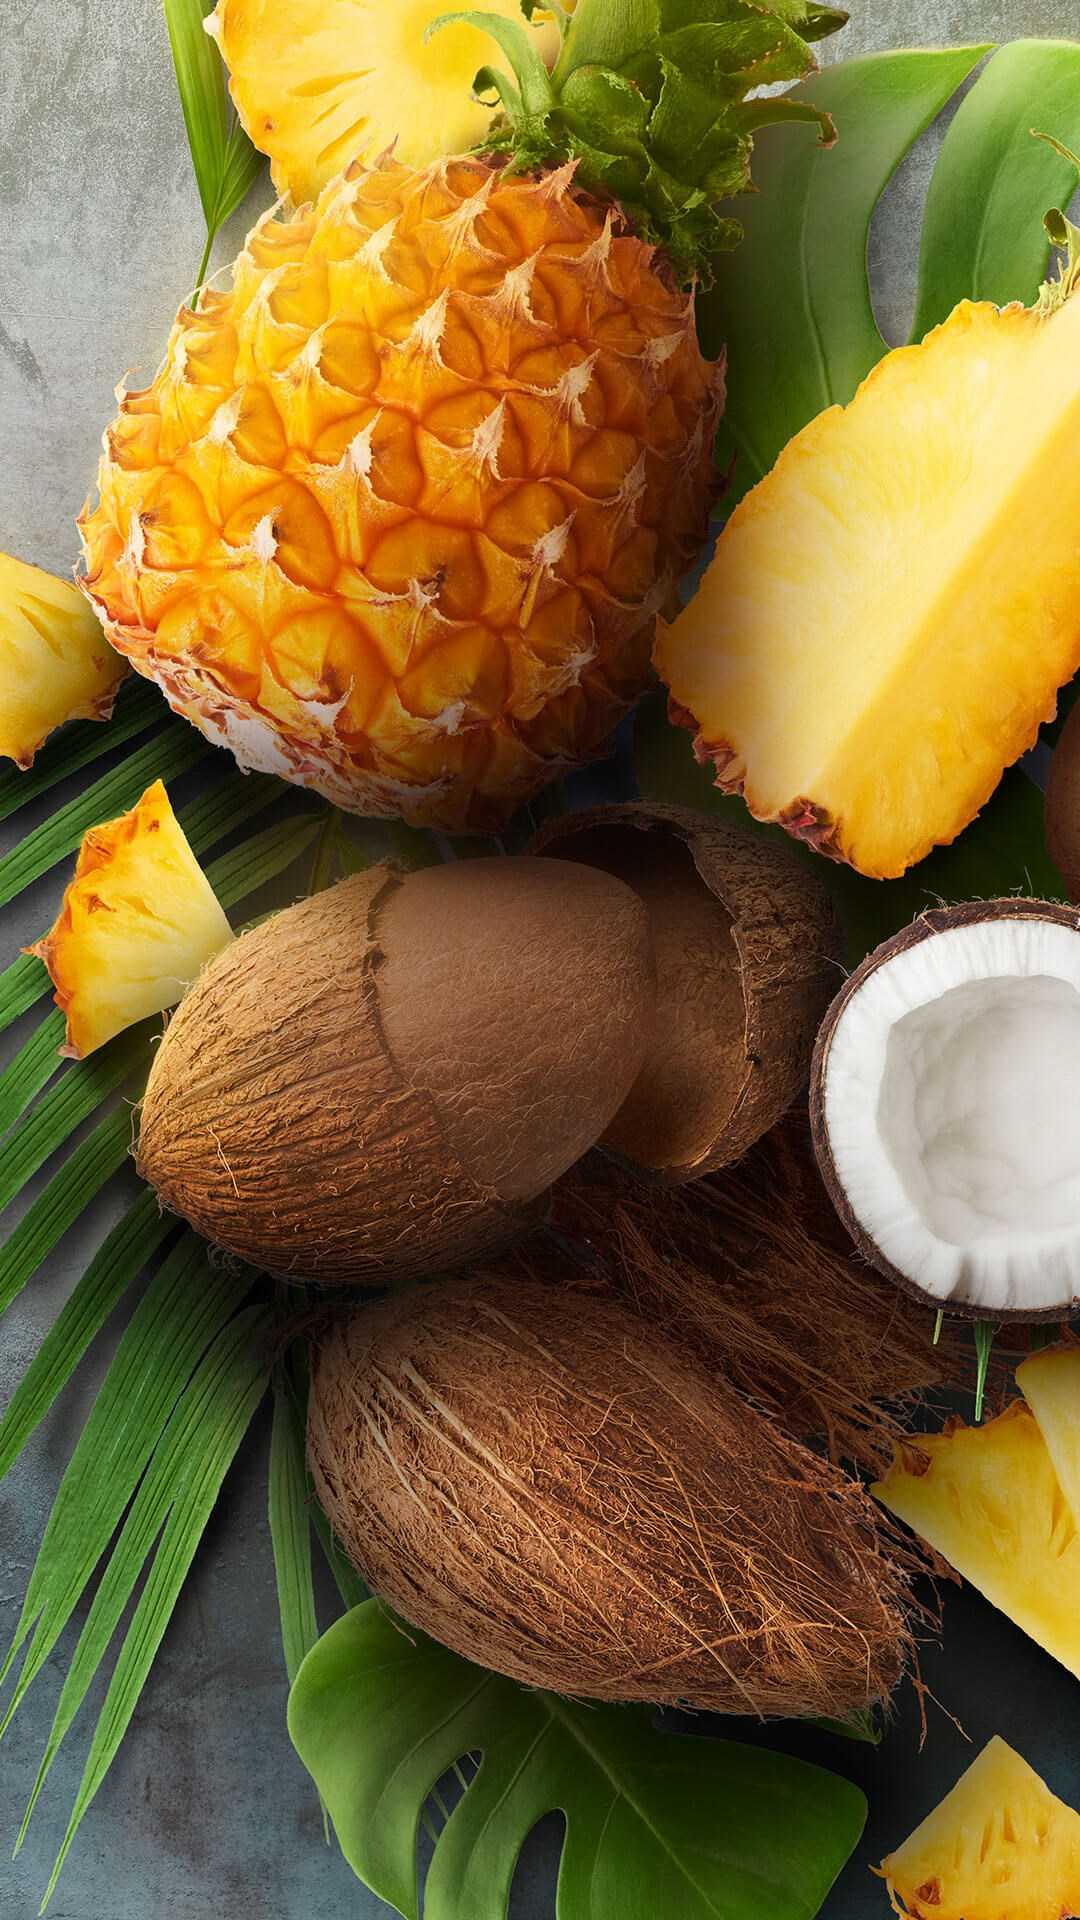 Portrait of tropical fruits - Cut pineapples and coconuts